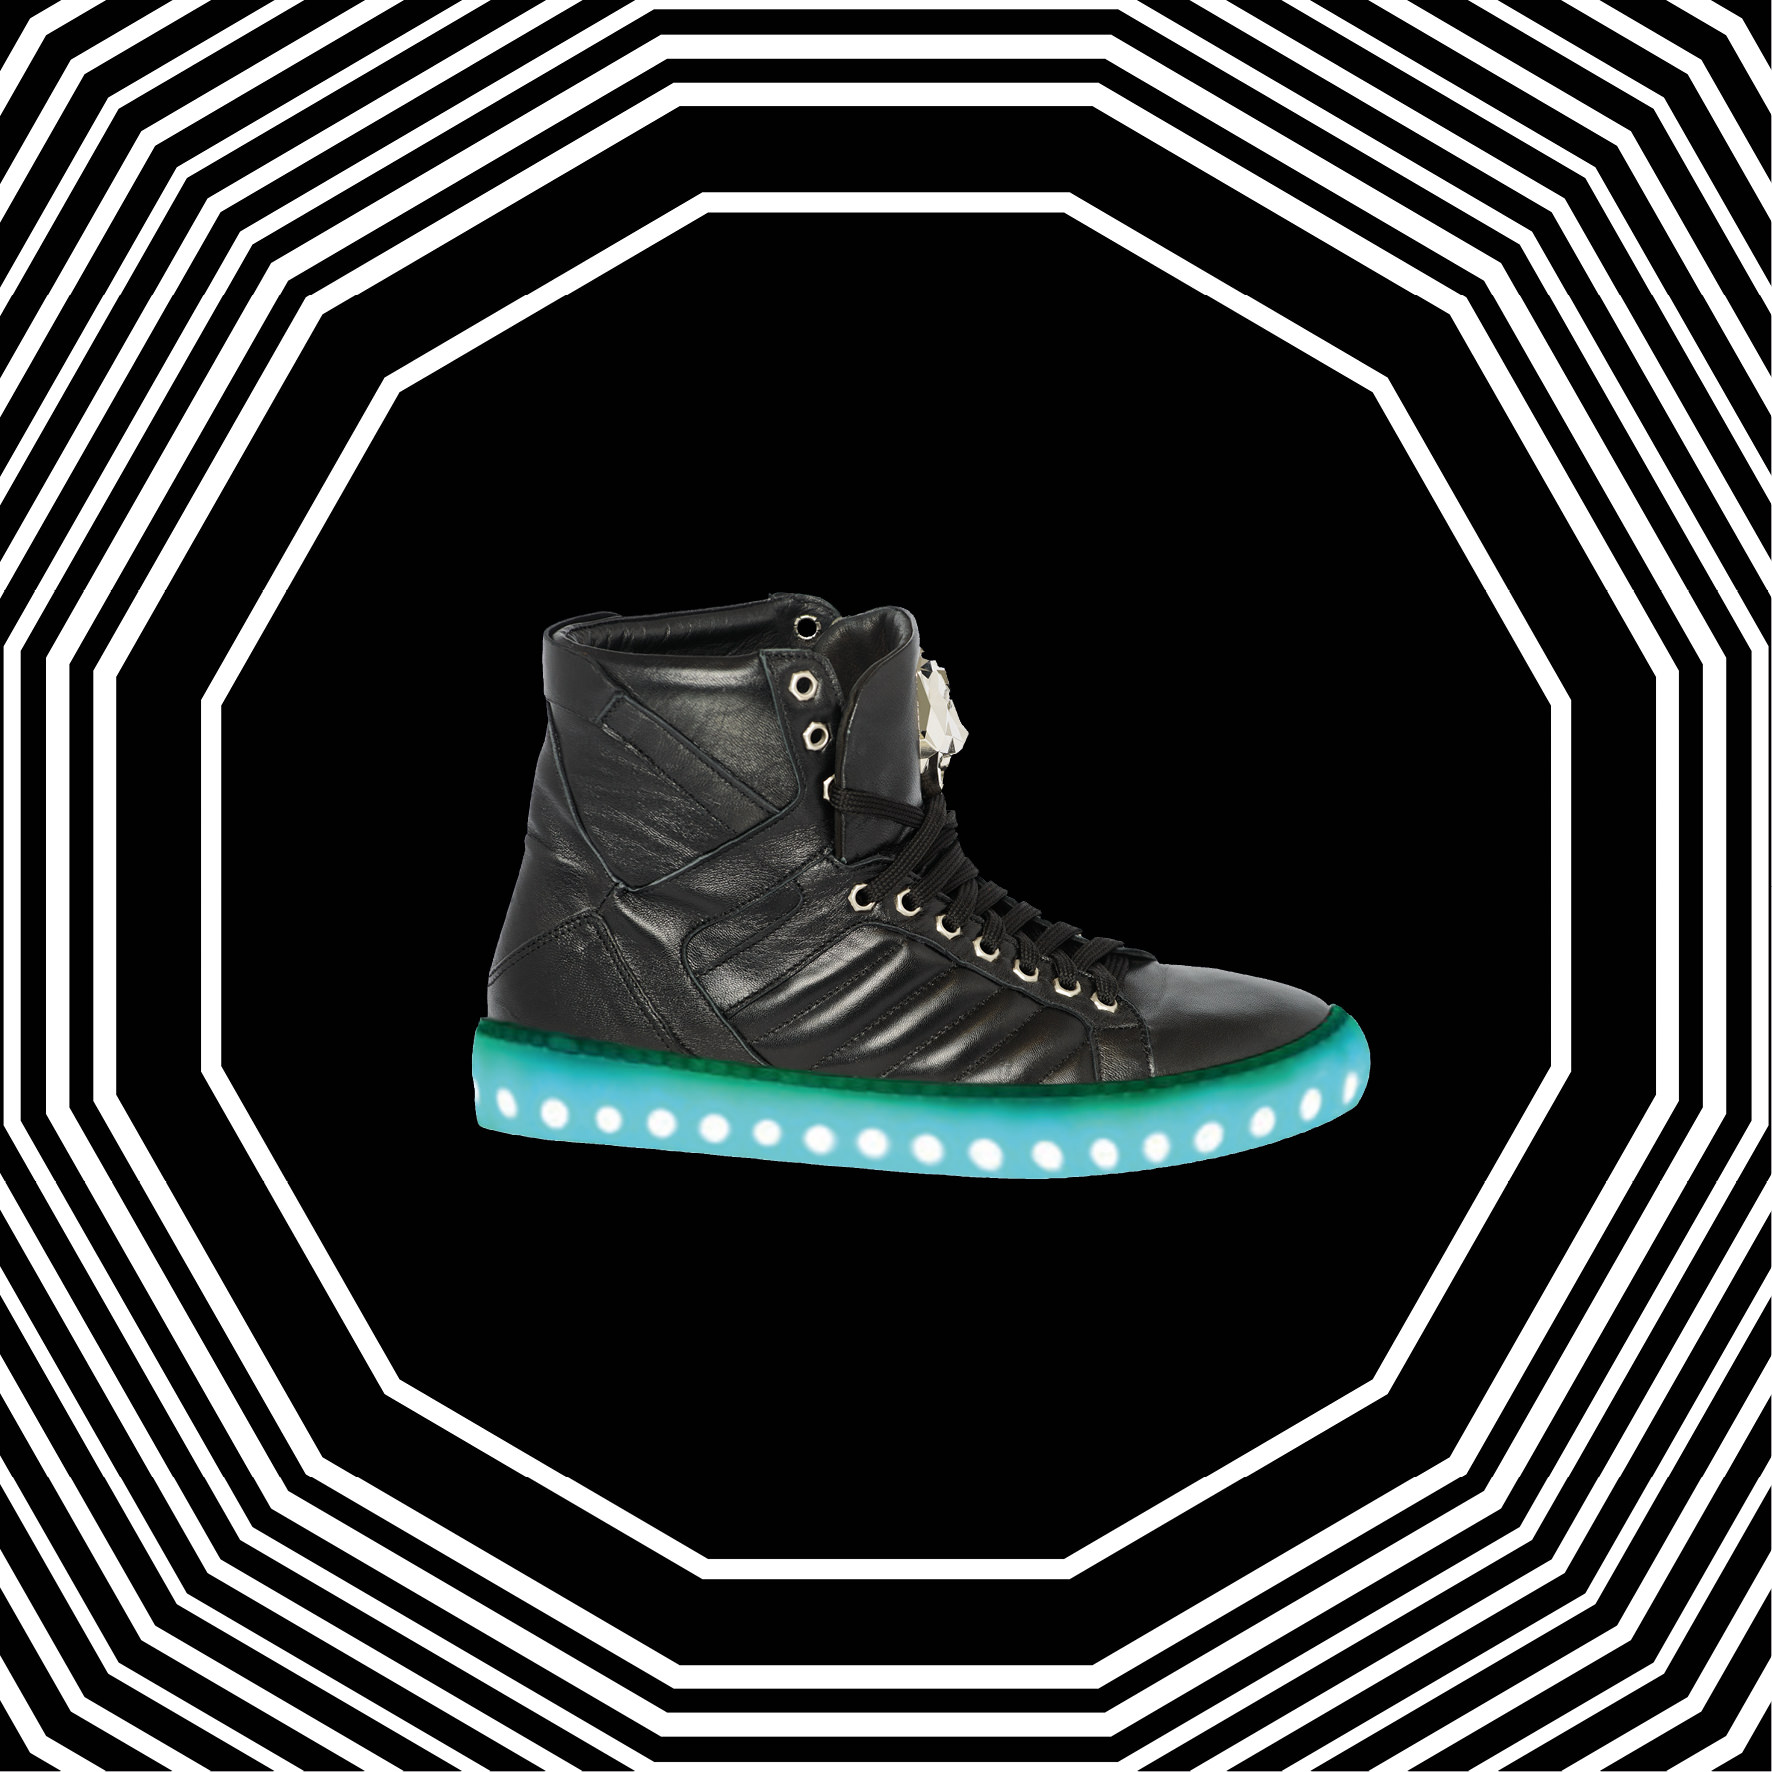 Fetish object of the week: Philipp Plein's sneaker